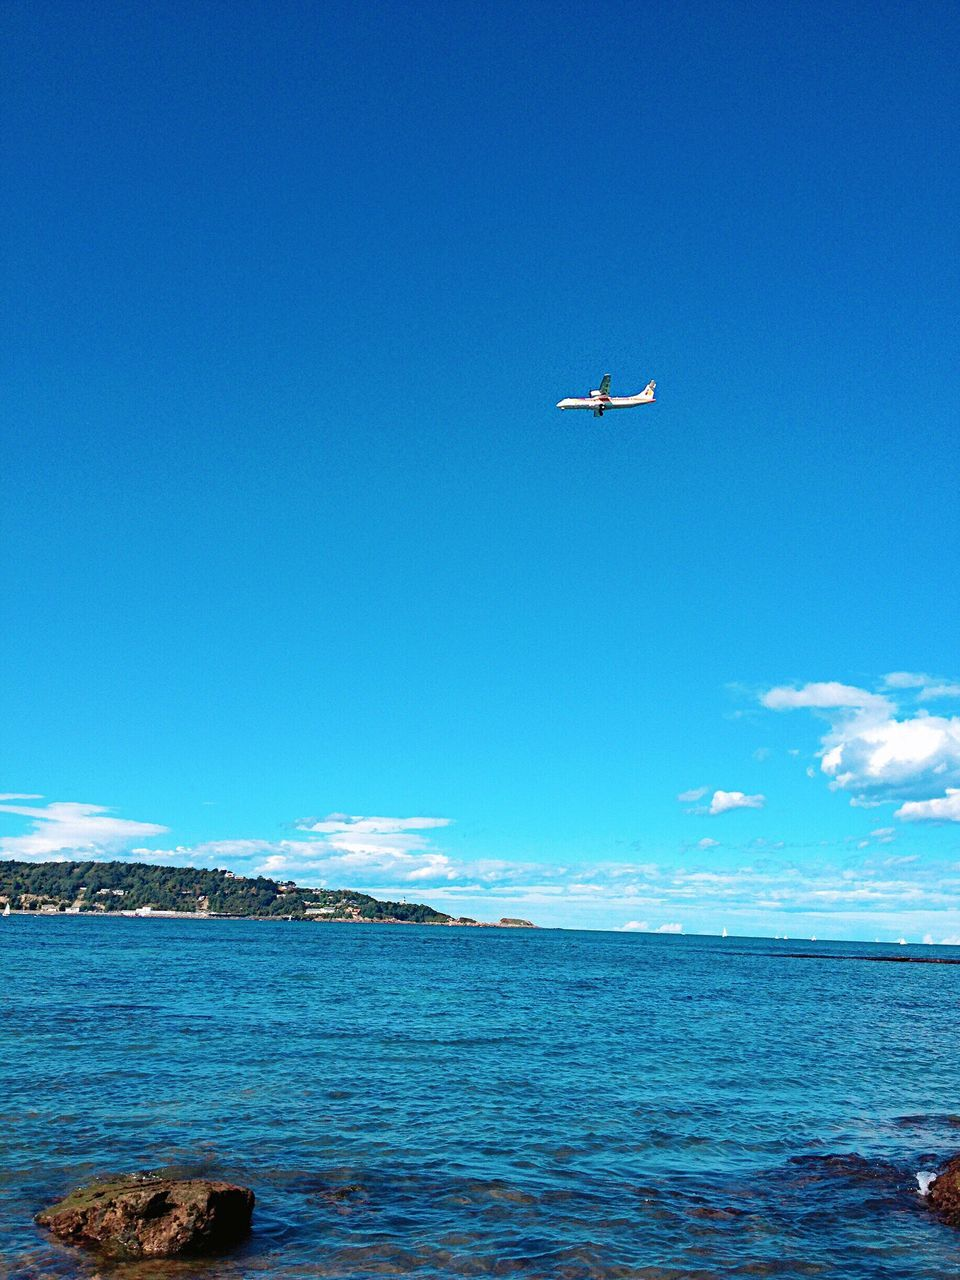 sea, blue, flying, airplane, water, transportation, day, mid-air, nature, outdoors, mode of transport, beauty in nature, scenics, tranquil scene, sky, no people, air vehicle, horizon over water, airplane wing